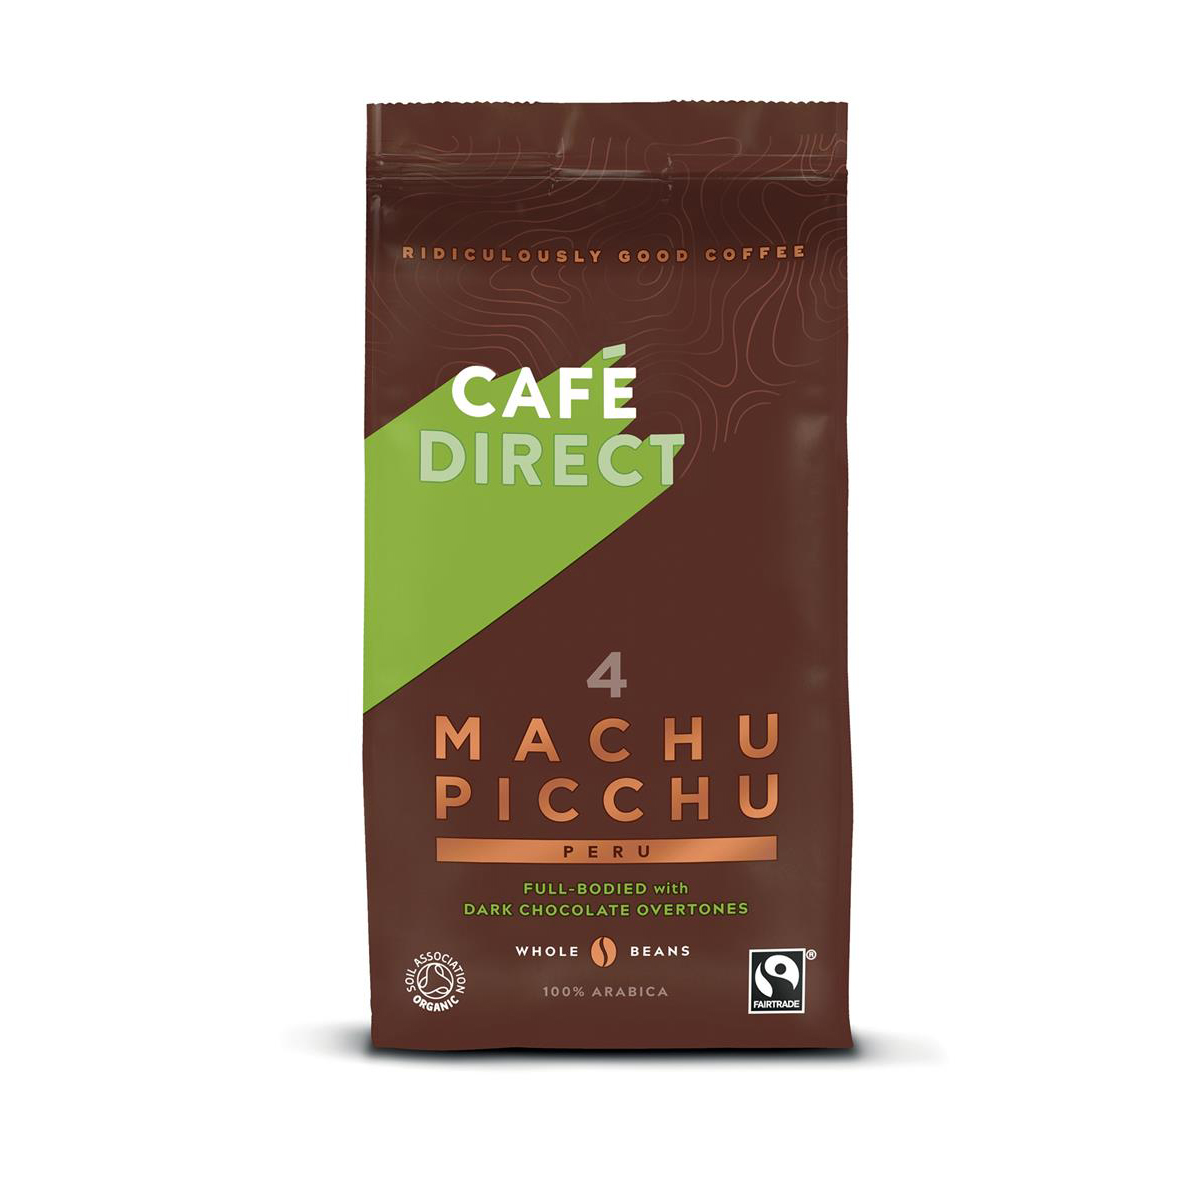 Cafe Direct Machu Picchu Peruvian Fairtrade Whole Beans Coffee 227g Ref FCR1004